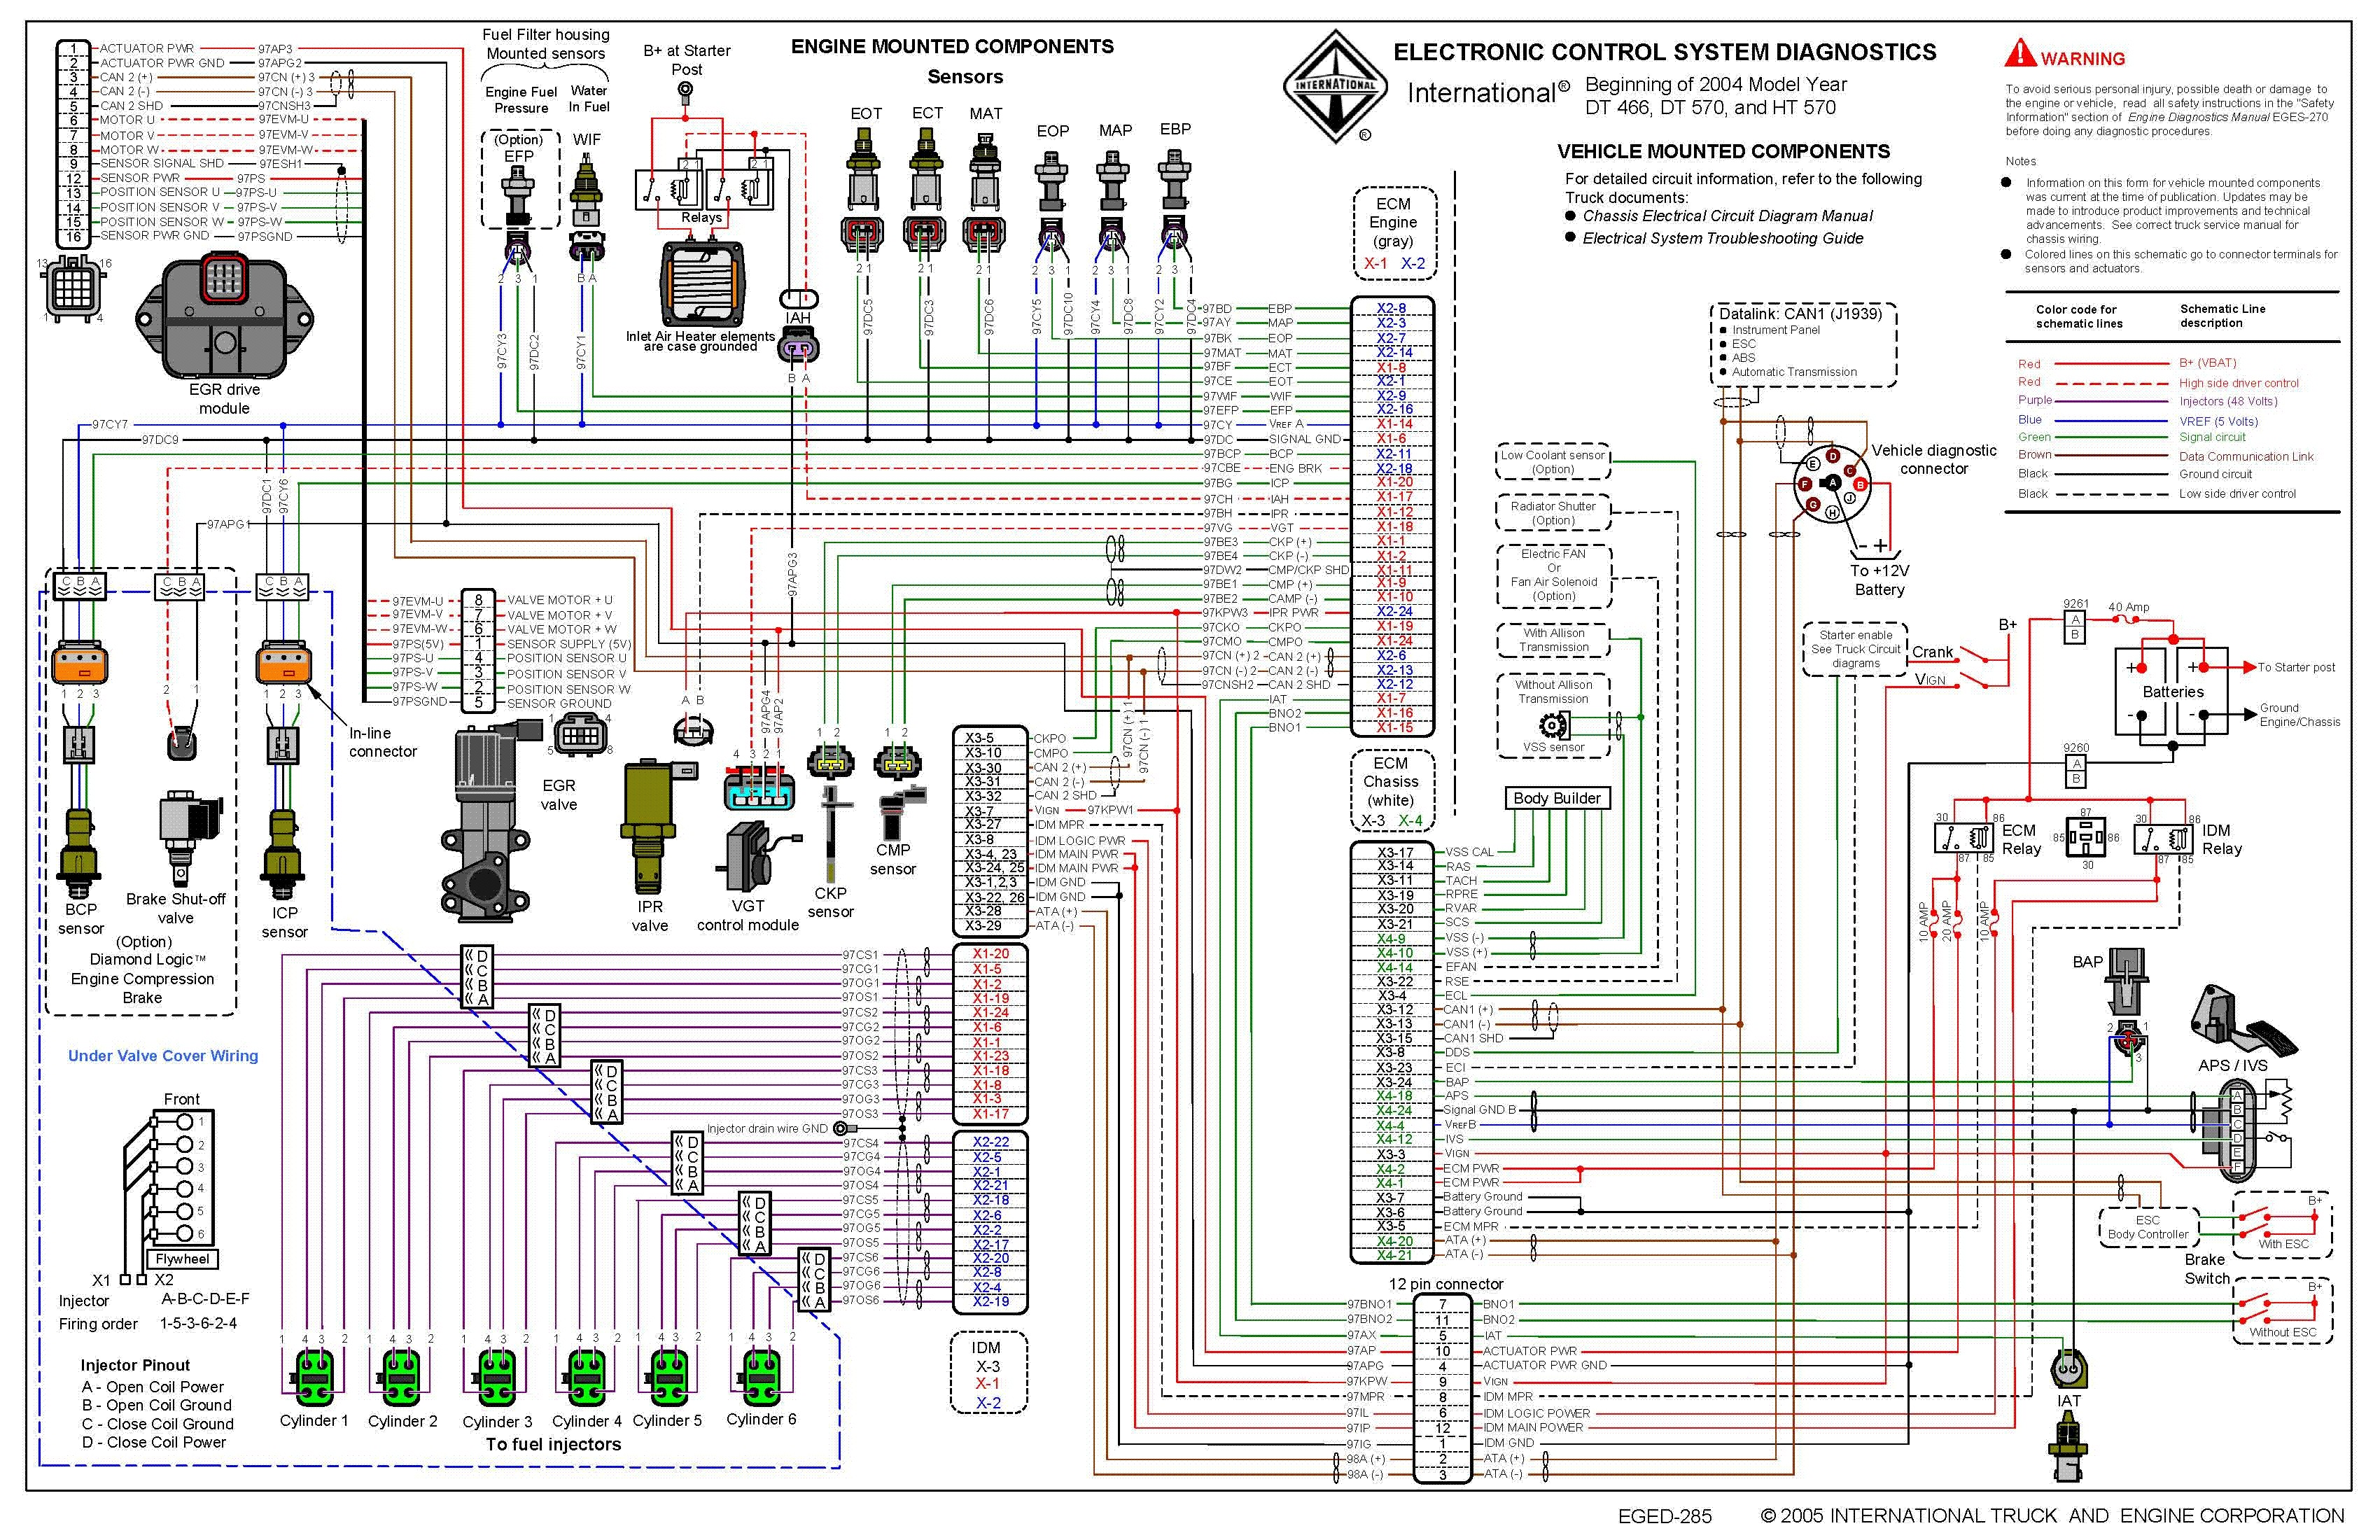 DIAGRAM] 1995 International 4700 Wiring Diagram FULL Version HD Quality Wiring  Diagram - OILRIGDIAGRAM.VOTREPARTENAIREMARQUE.FRVotre Partenaire Marque